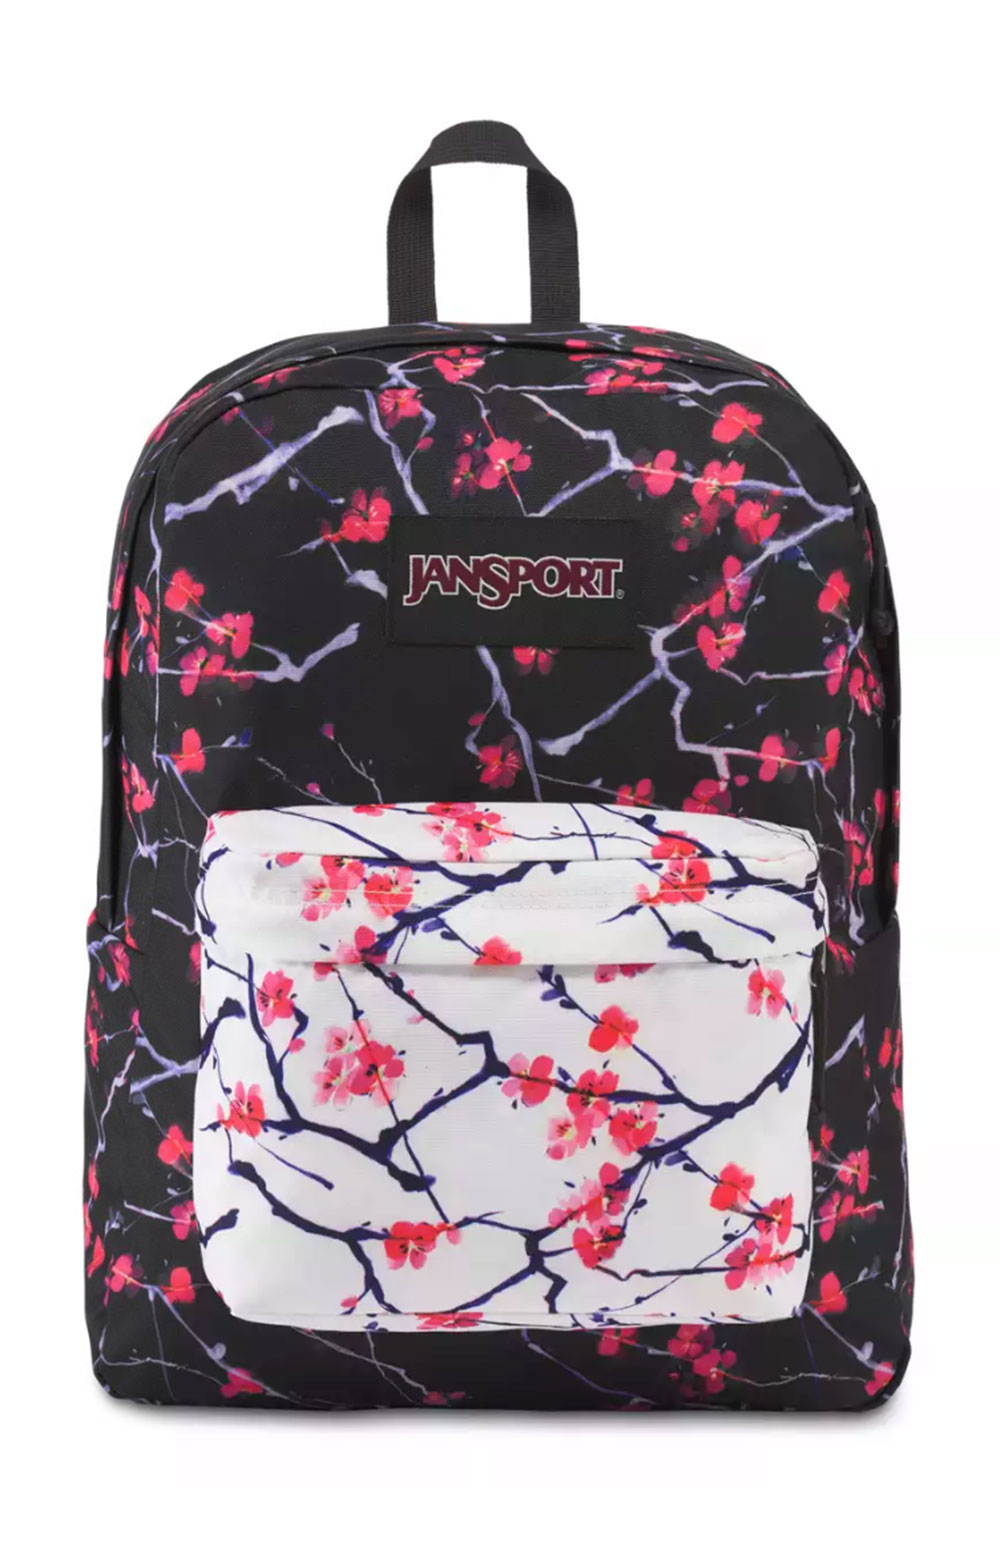 Superbreak Black Label Backpack - Sakura Delight Black